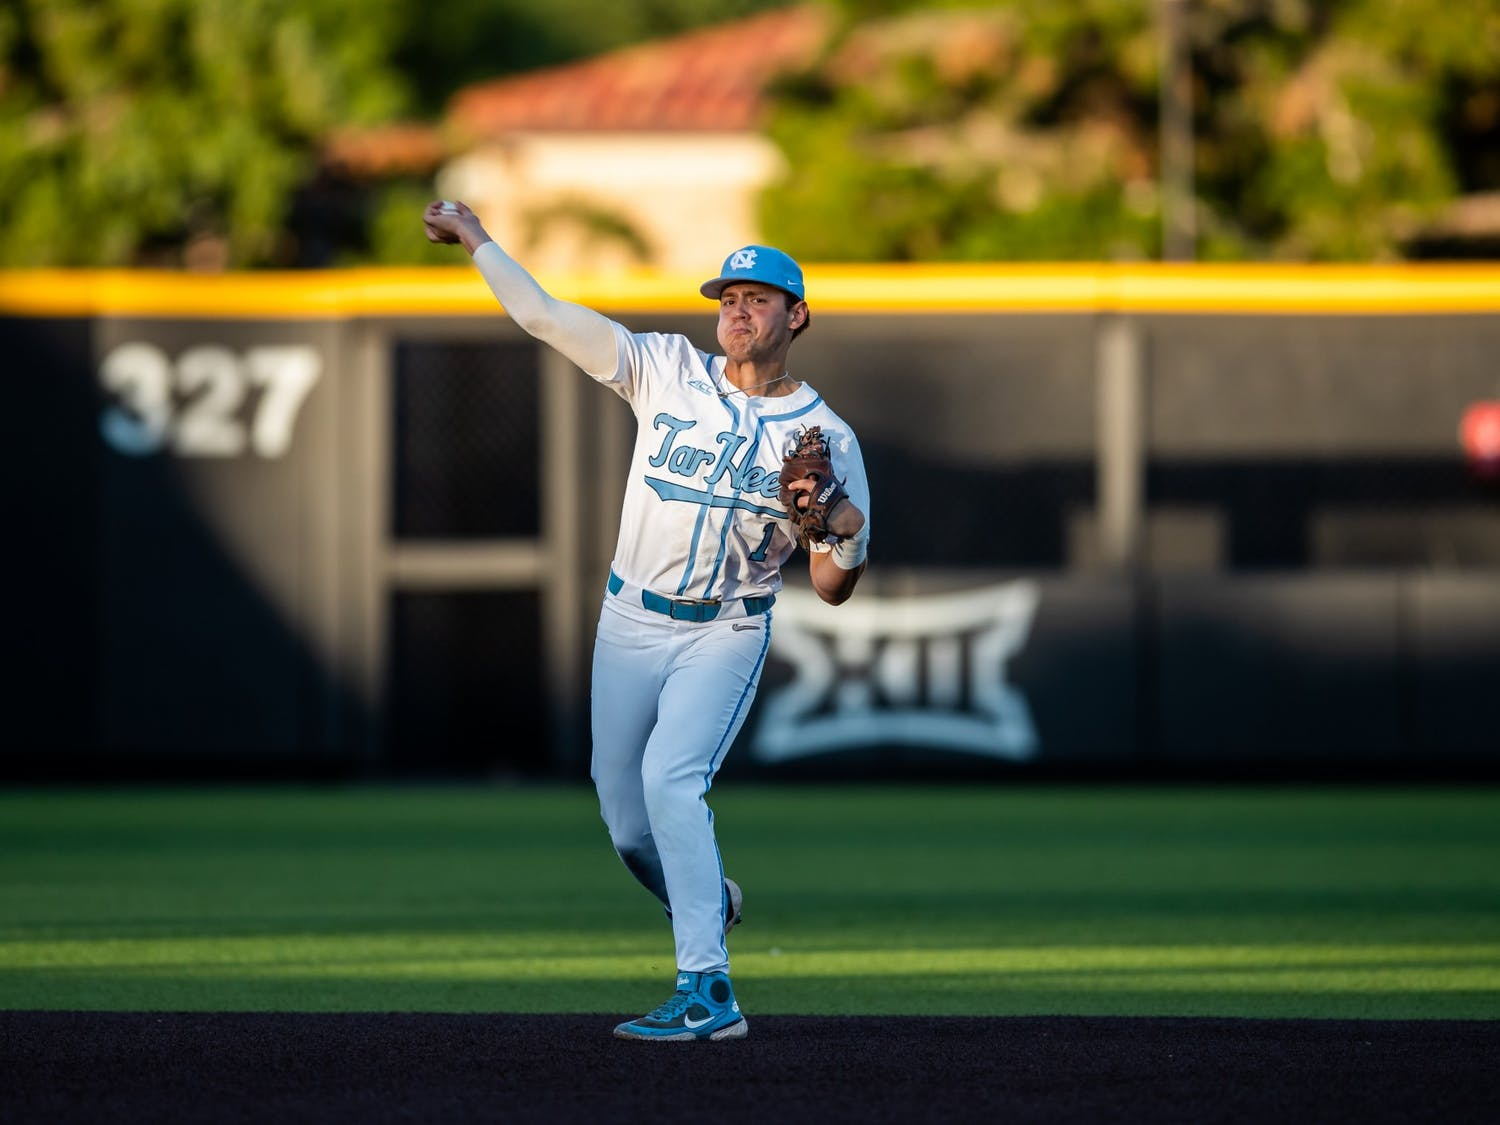 UNC sophomore short stop Danny Serretti (1) throws the ball at the NCAA tournament game against Texas Tech on Saturday June 5, 2021 in Lubbock, TX. The Tar Heels lost 2-7. Photo courtesy of Elise Bressler.